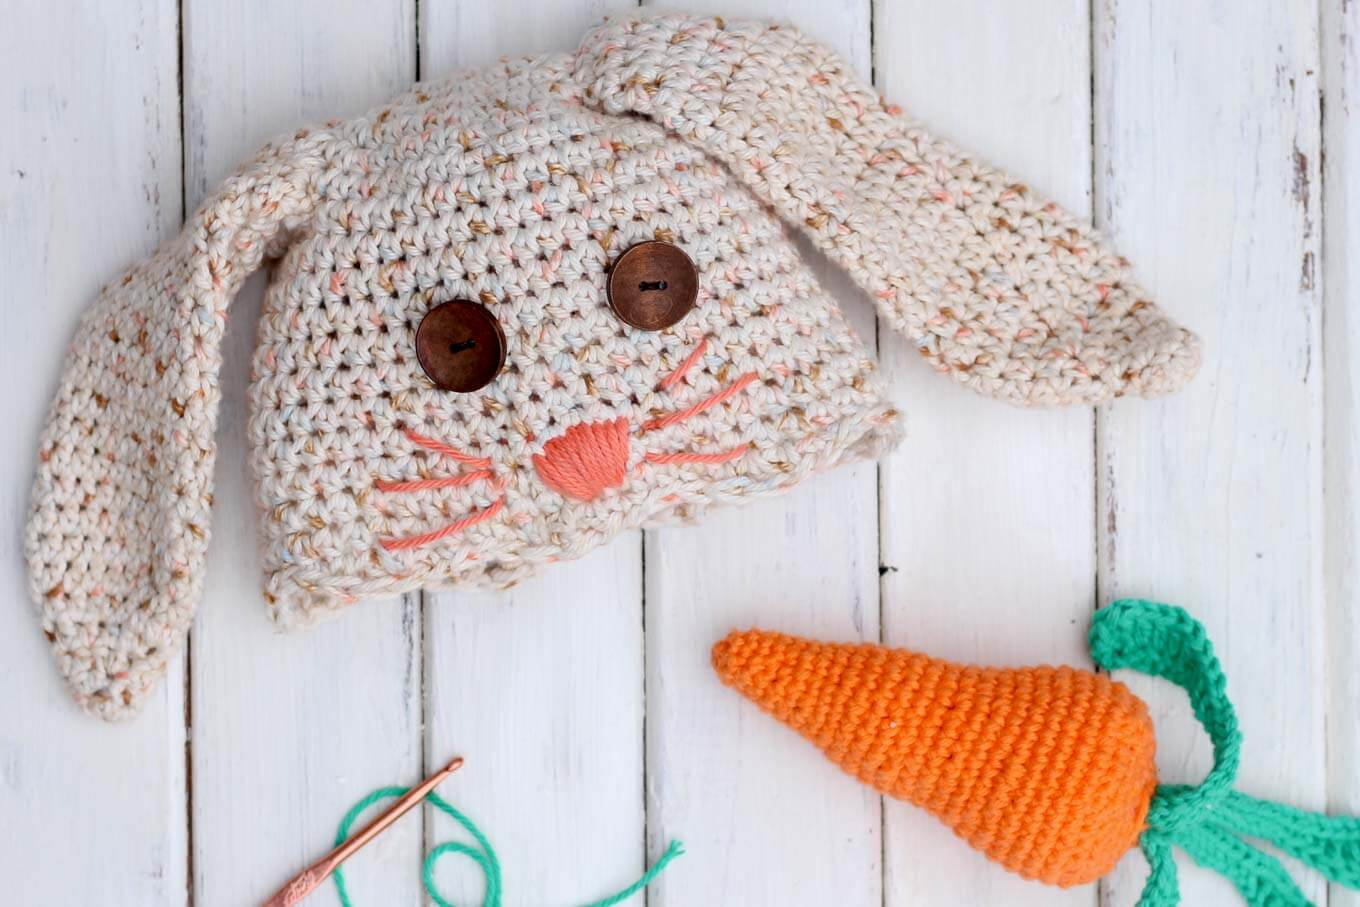 This crochet bunny hat and carrot toy make a great DIY baby shower gift idea or Easter surprise! | MakeAndDoCrew.com